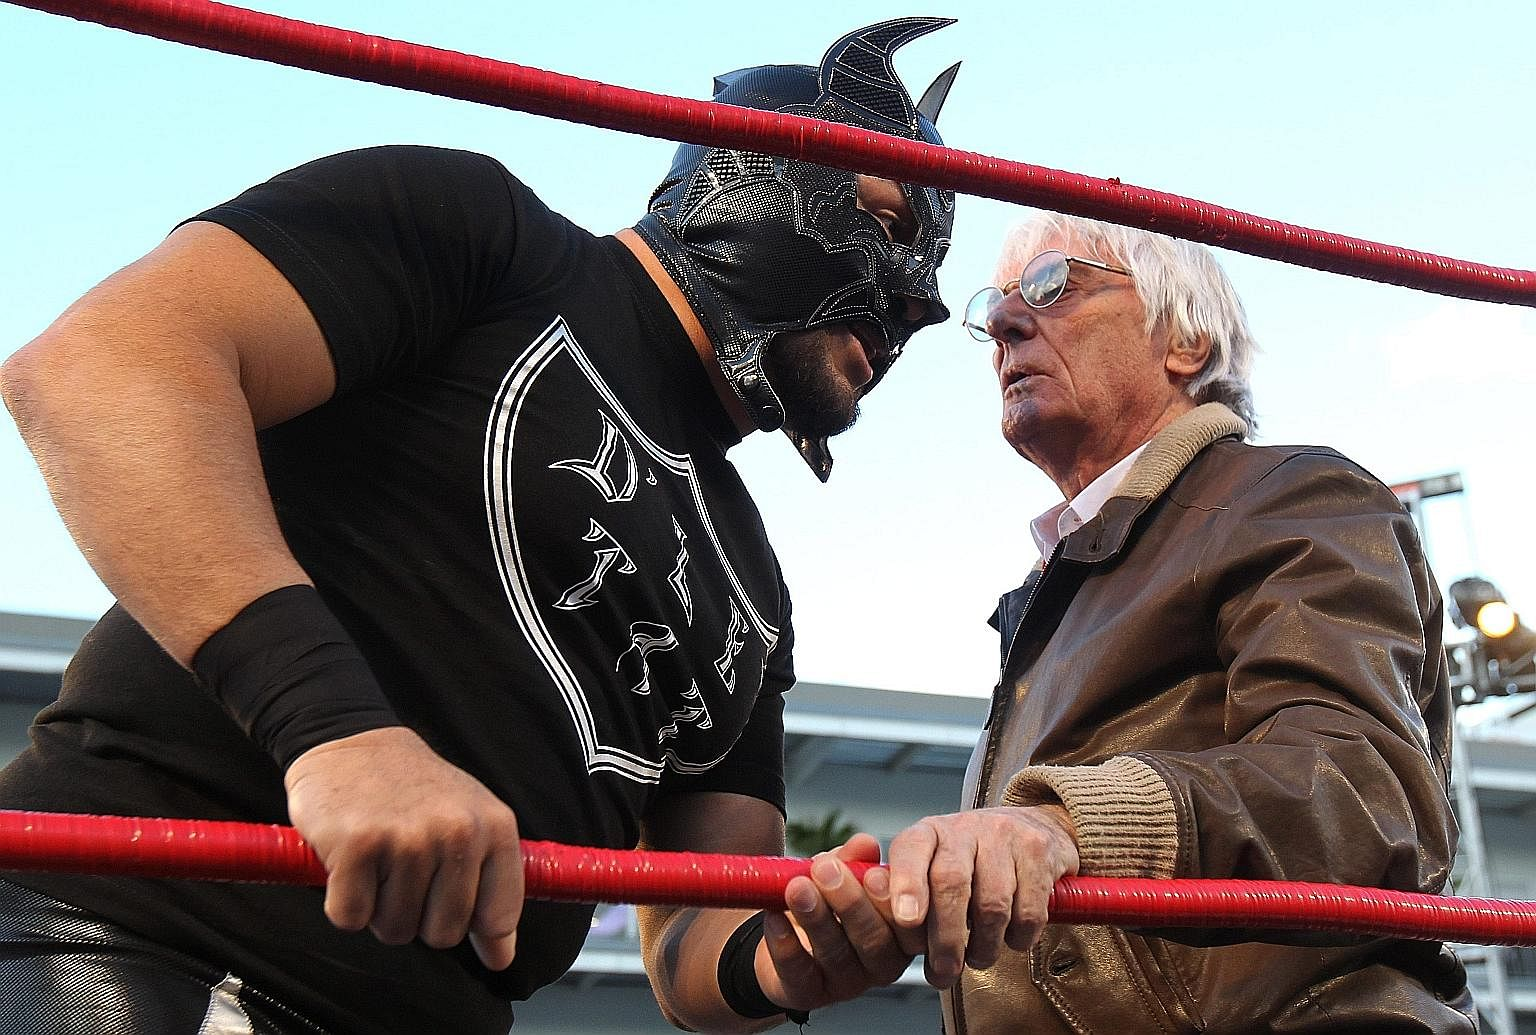 Formula One commercial boss Bernie Ecclestone talking to a wrestler in Mexico City on Thursday, before the Mexican Grand Prix weekend kicked off. Ecclestone had to wrestle with a few issues of his own before the recent US$4.4 billion (S$6.13 billion)